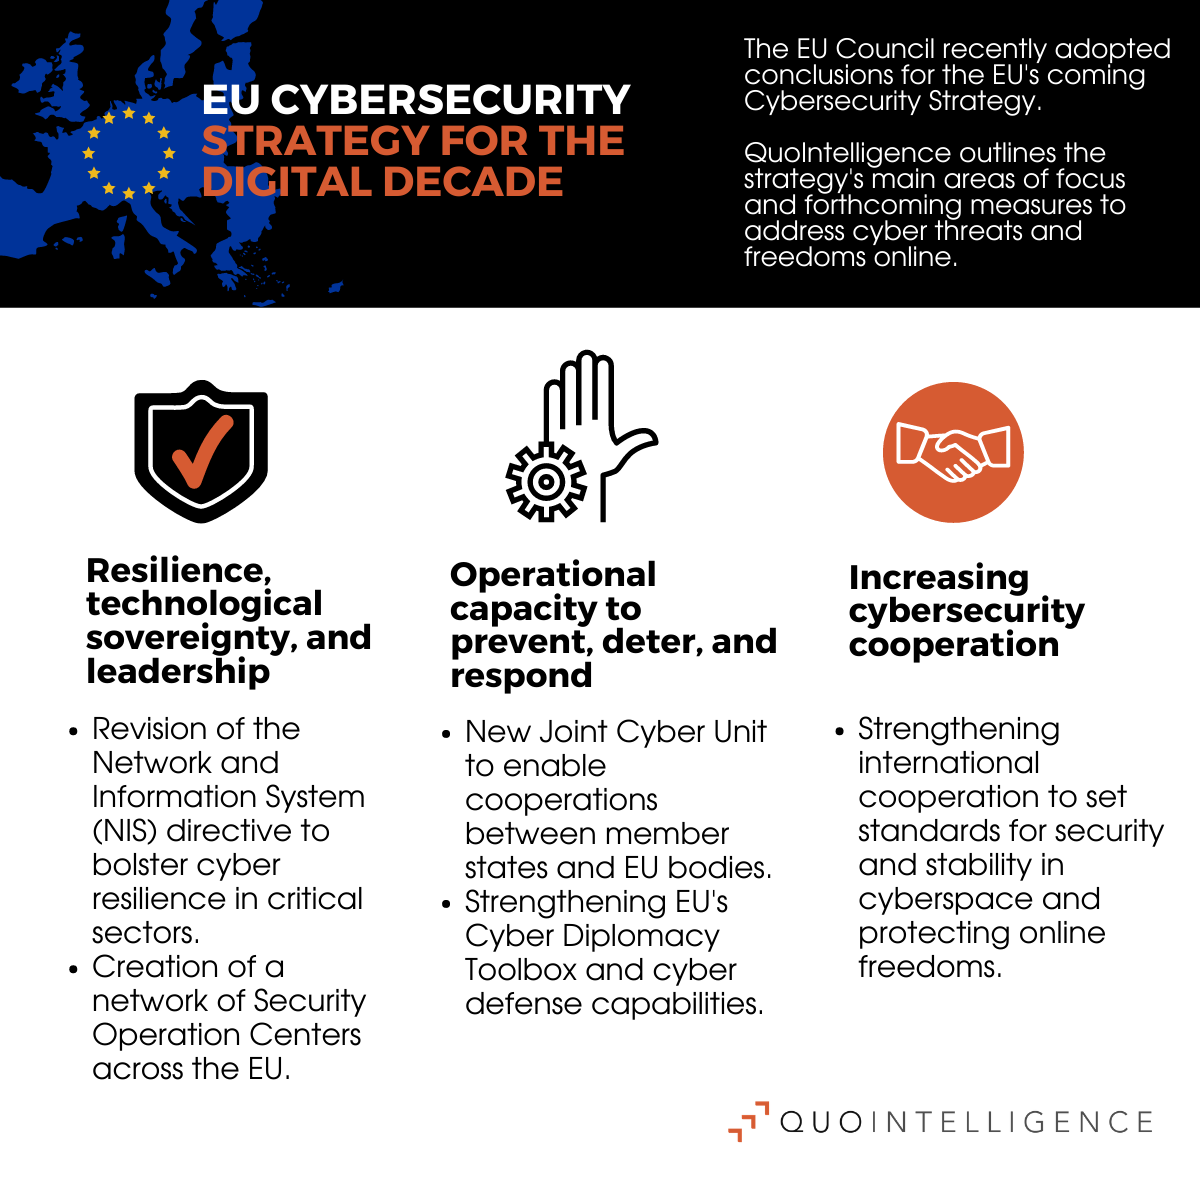 Infographic pointing out the three main areas of the EU's cybersecurity strategy